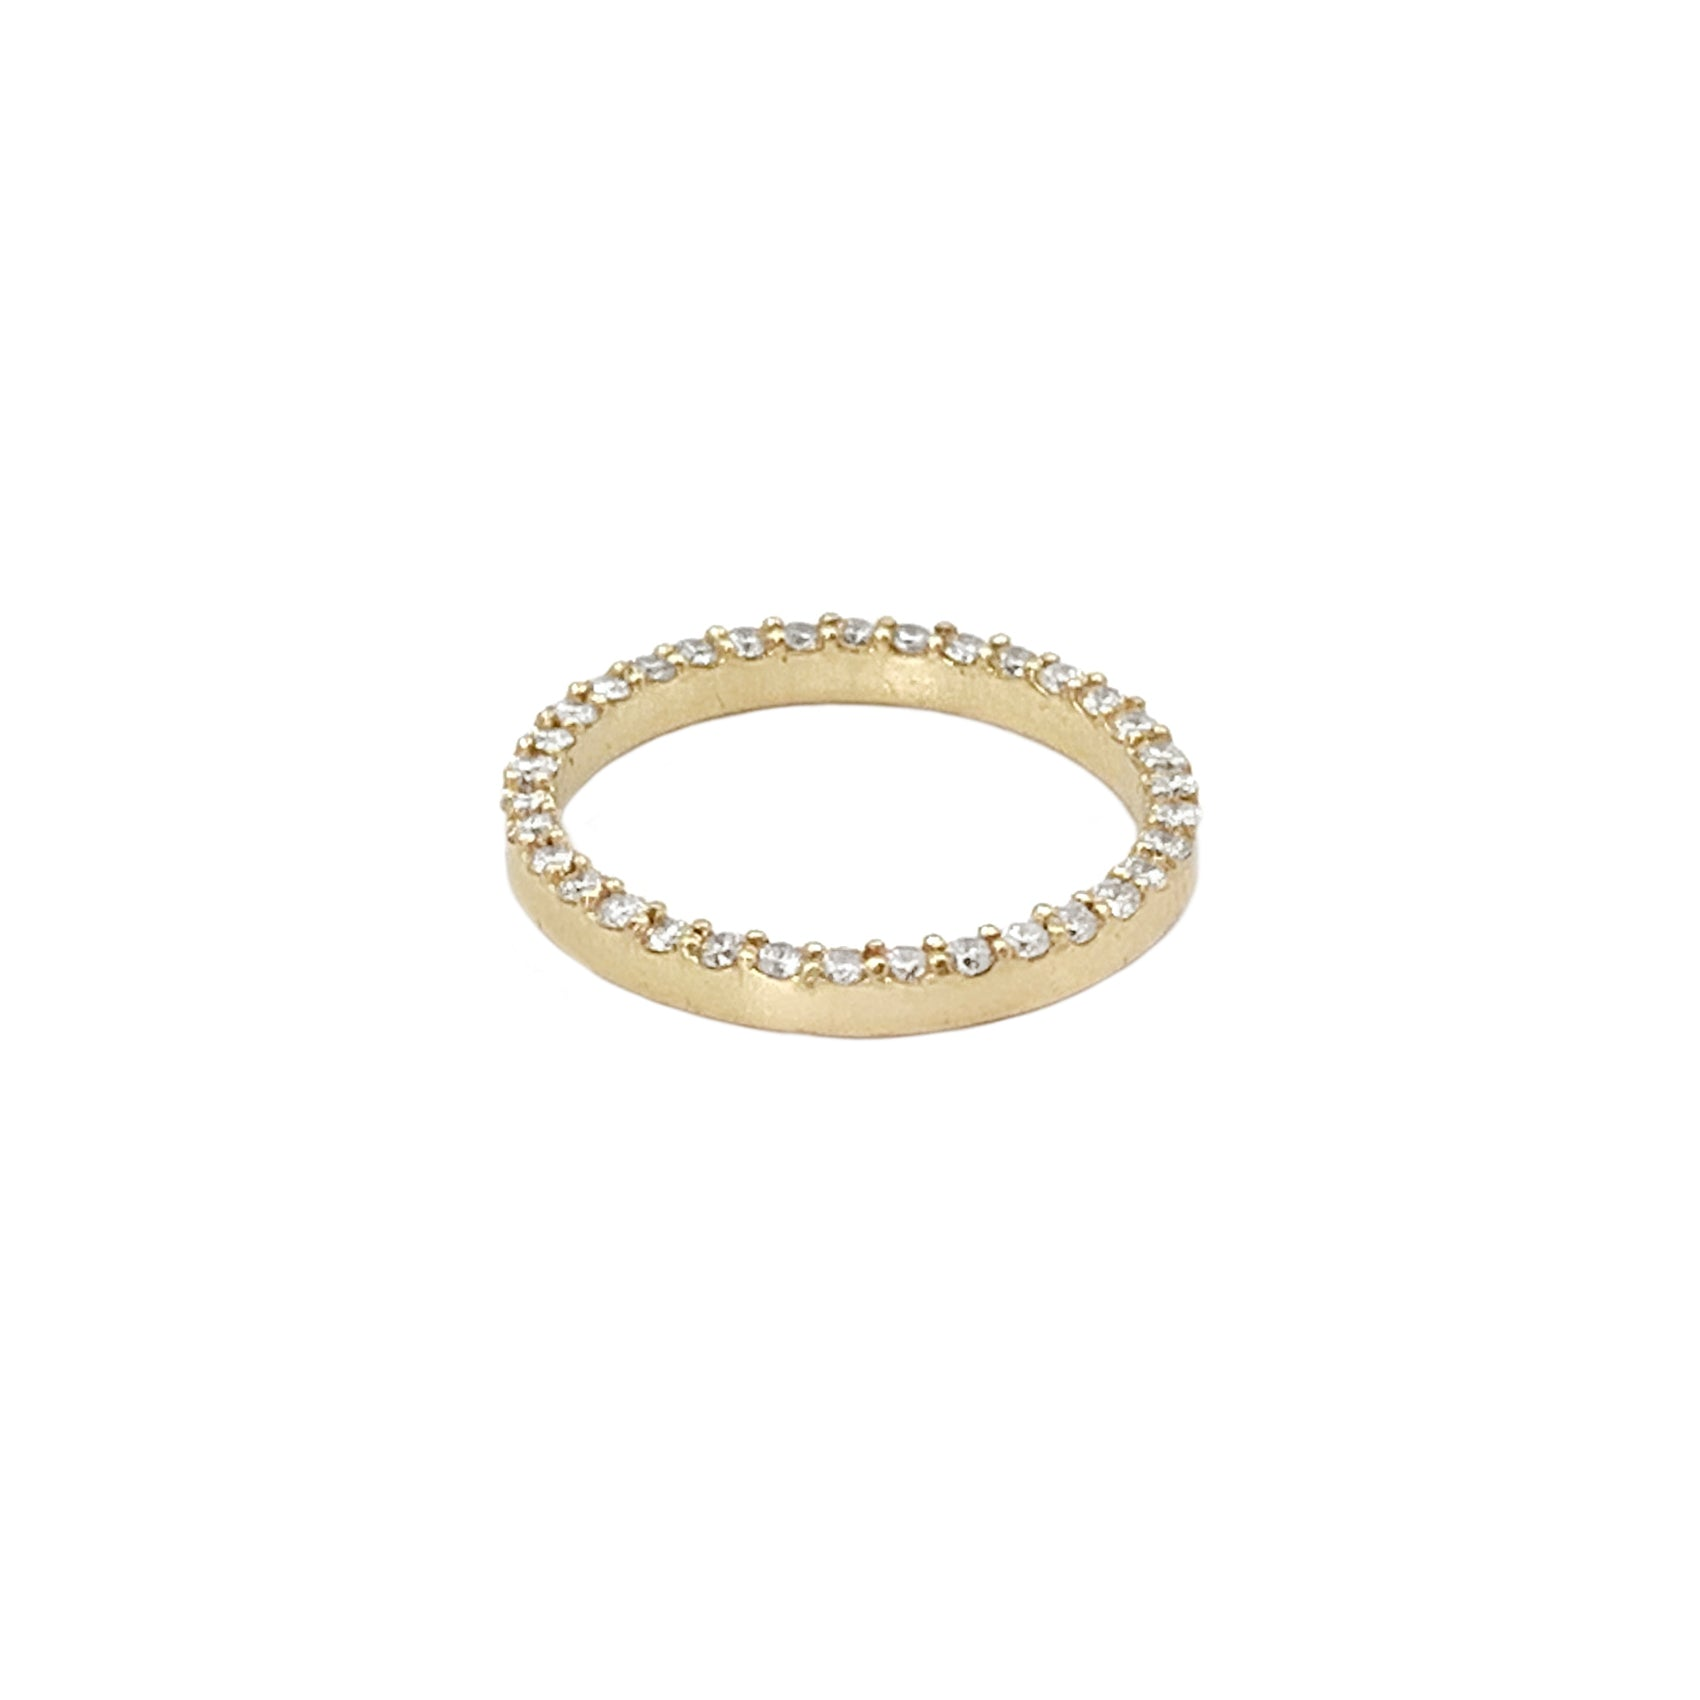 Gold Puzzle Ring with One Band Of Champagne Diamonds Ring by Leslie Paige for Broken English Jewelry